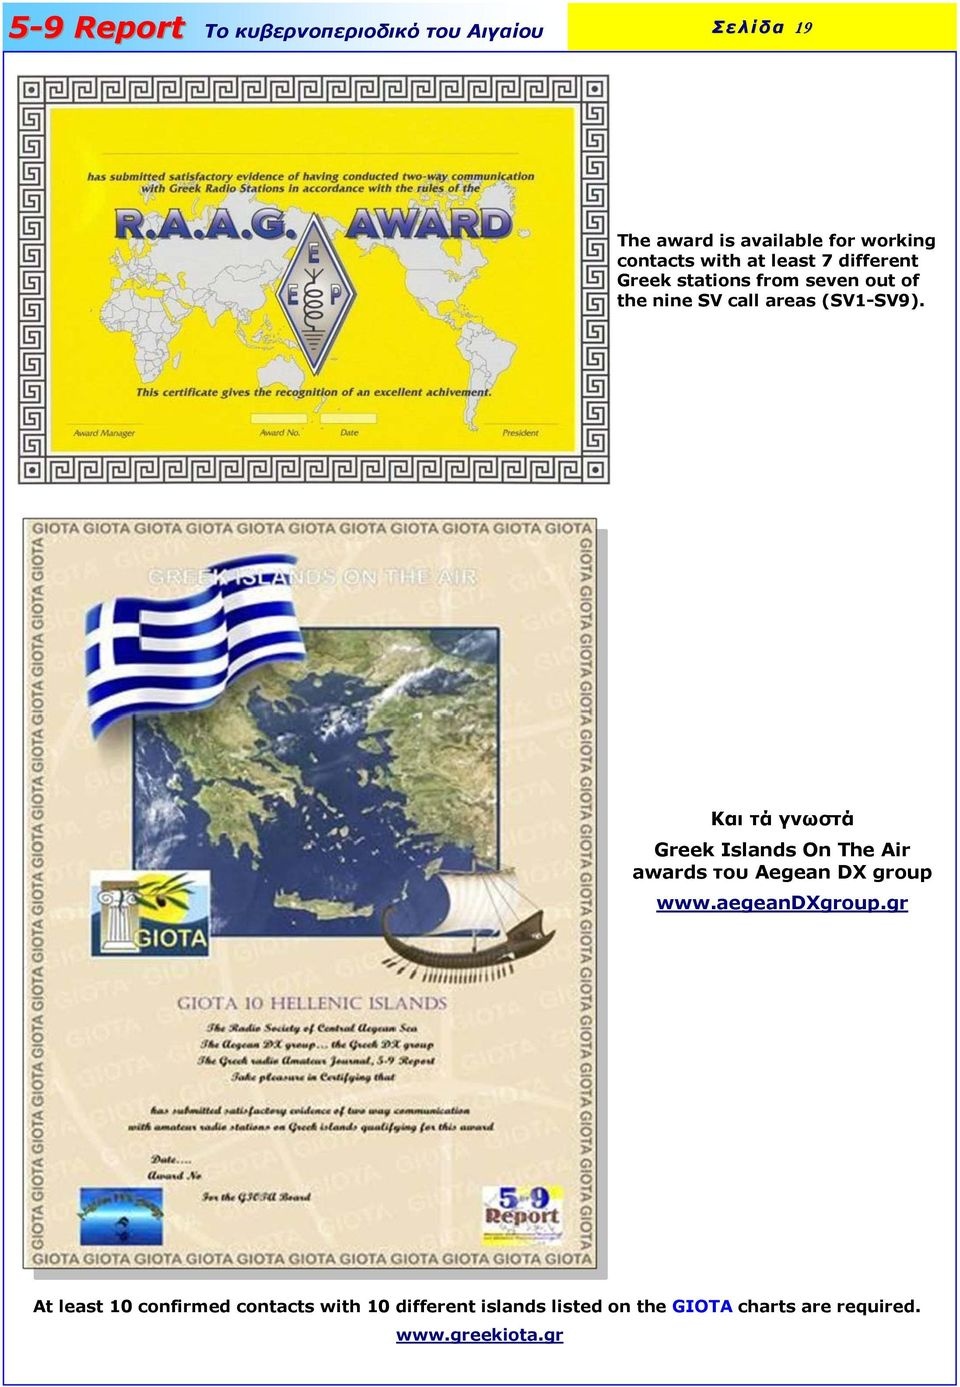 Και τά γνωστά Greek Islands On The Air awards του Aegean DX group www.aegeandxgroup.